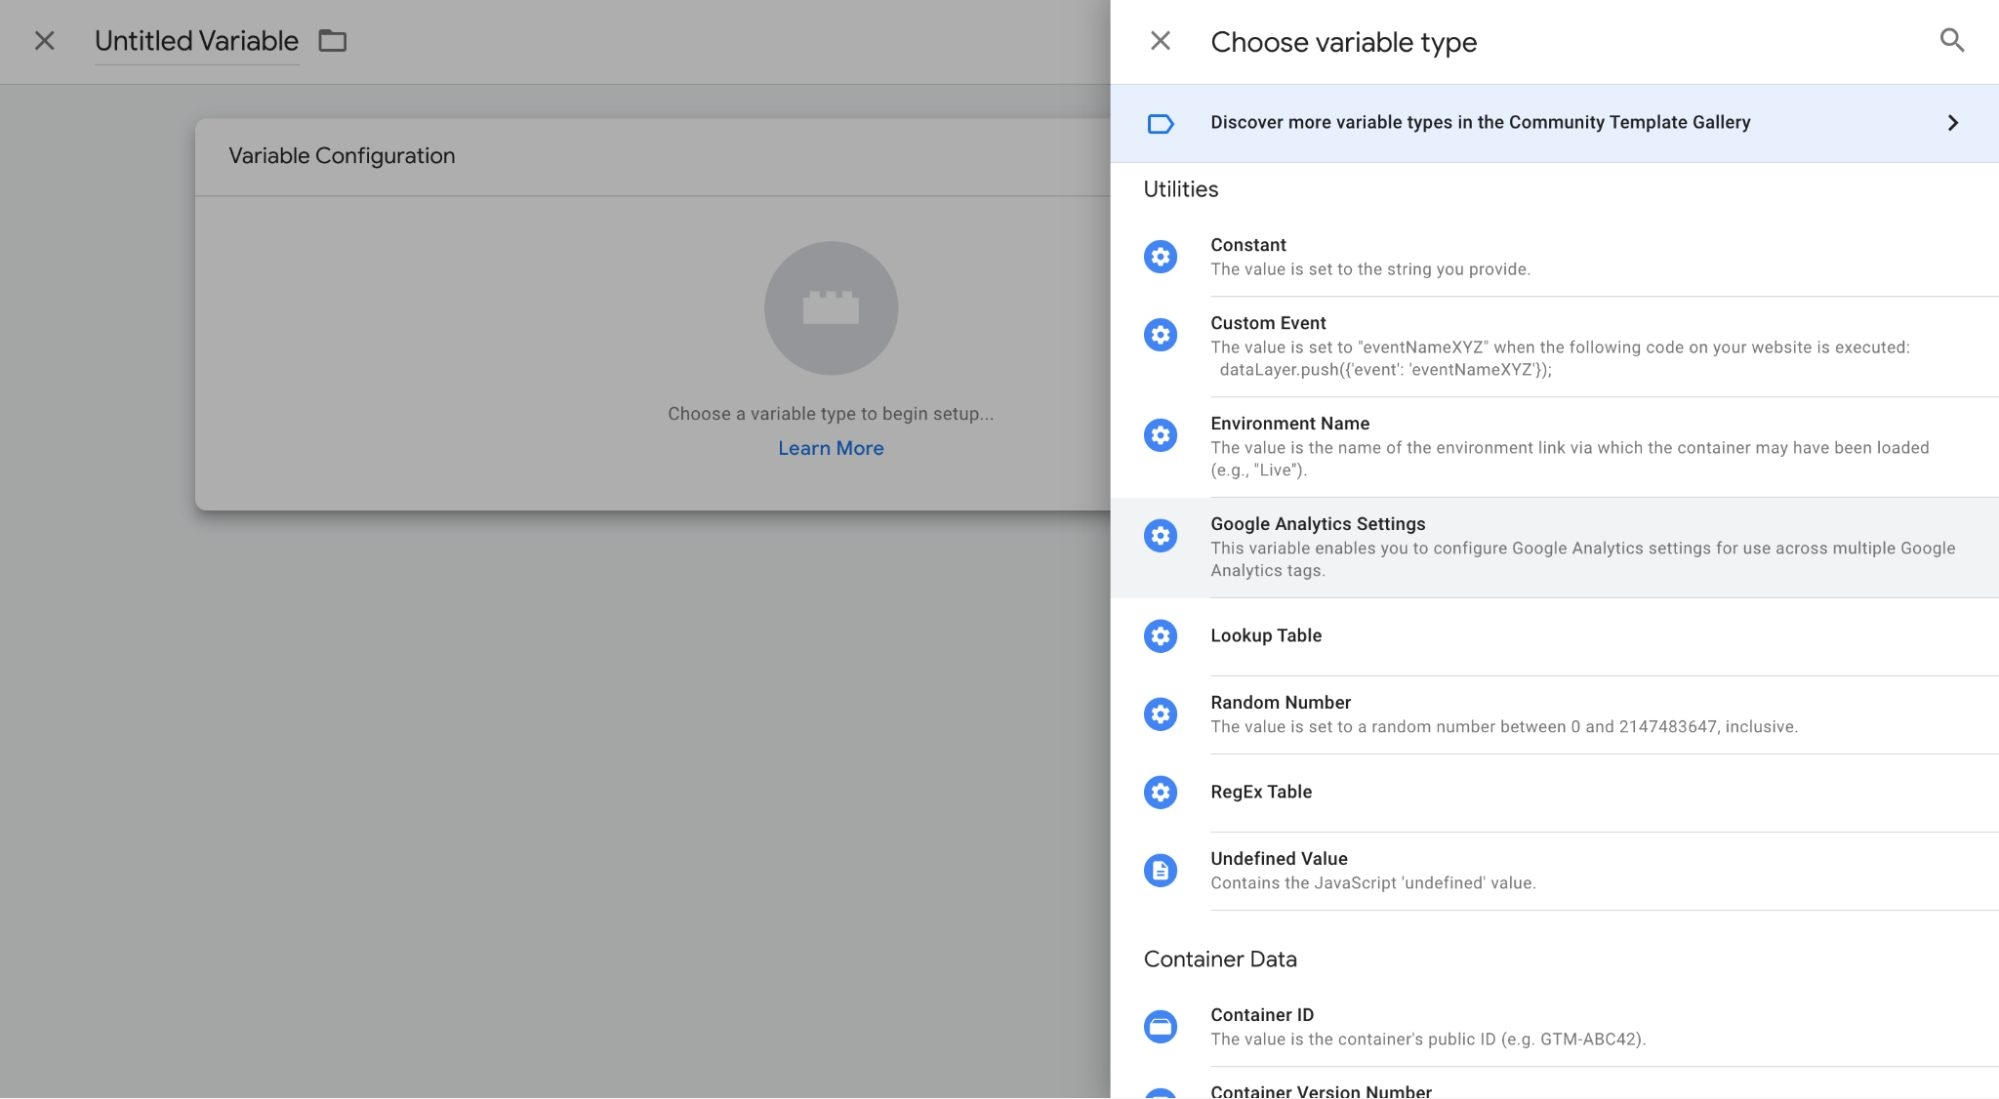 The Complete Guide to Google Tag Manager